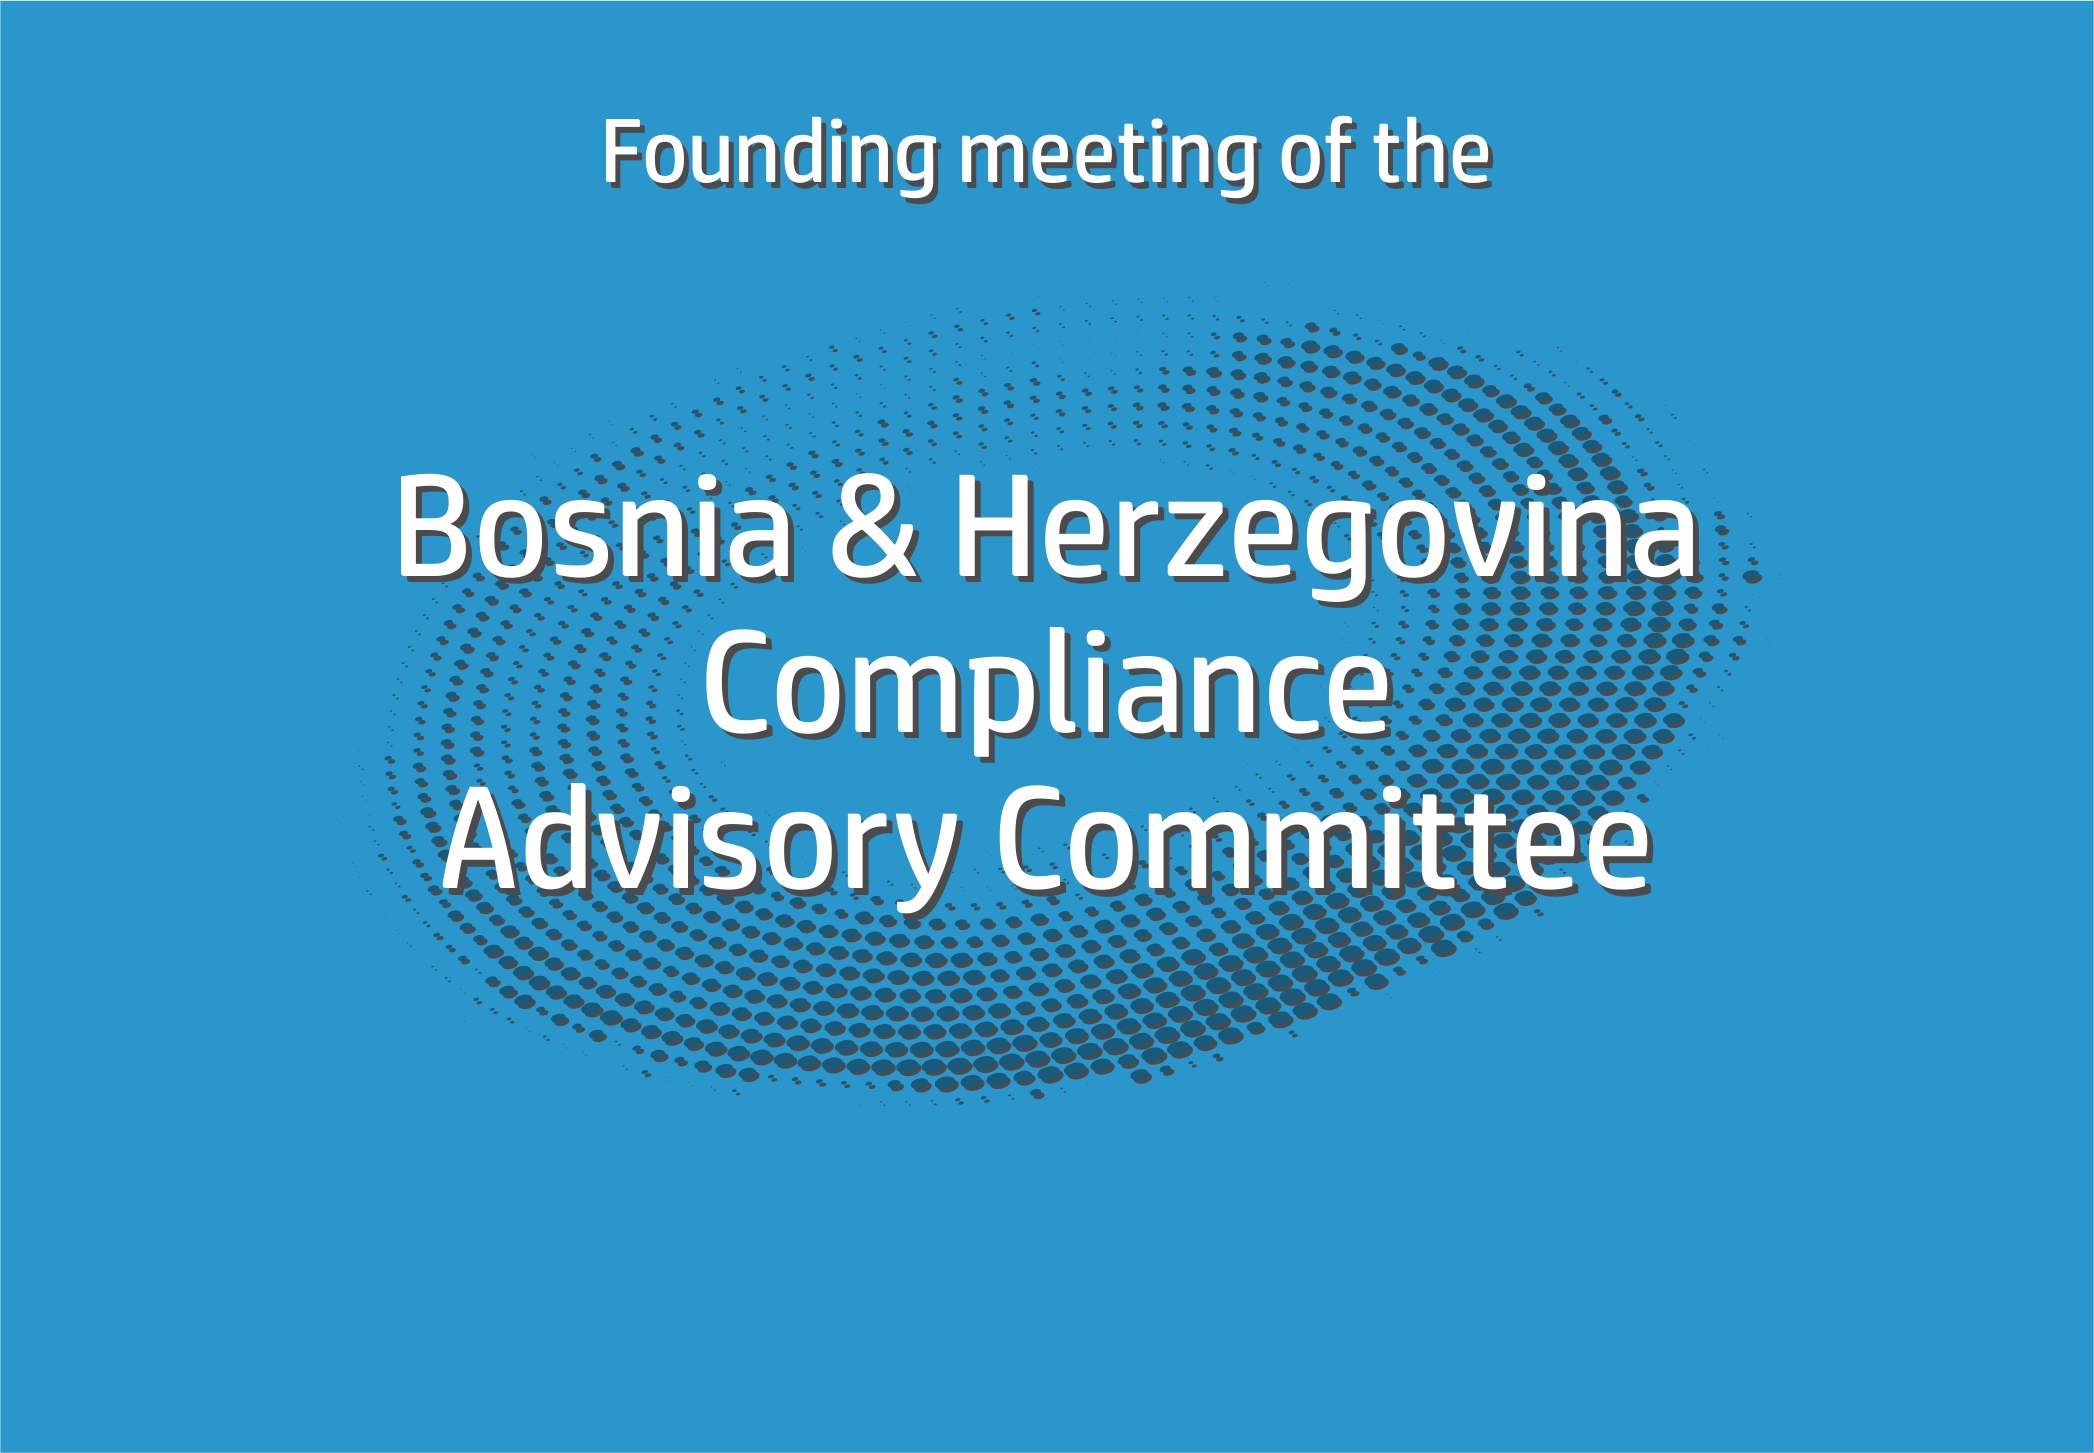 Advisory Board for Compliance and Ethics in Bosnia and Herzegovina